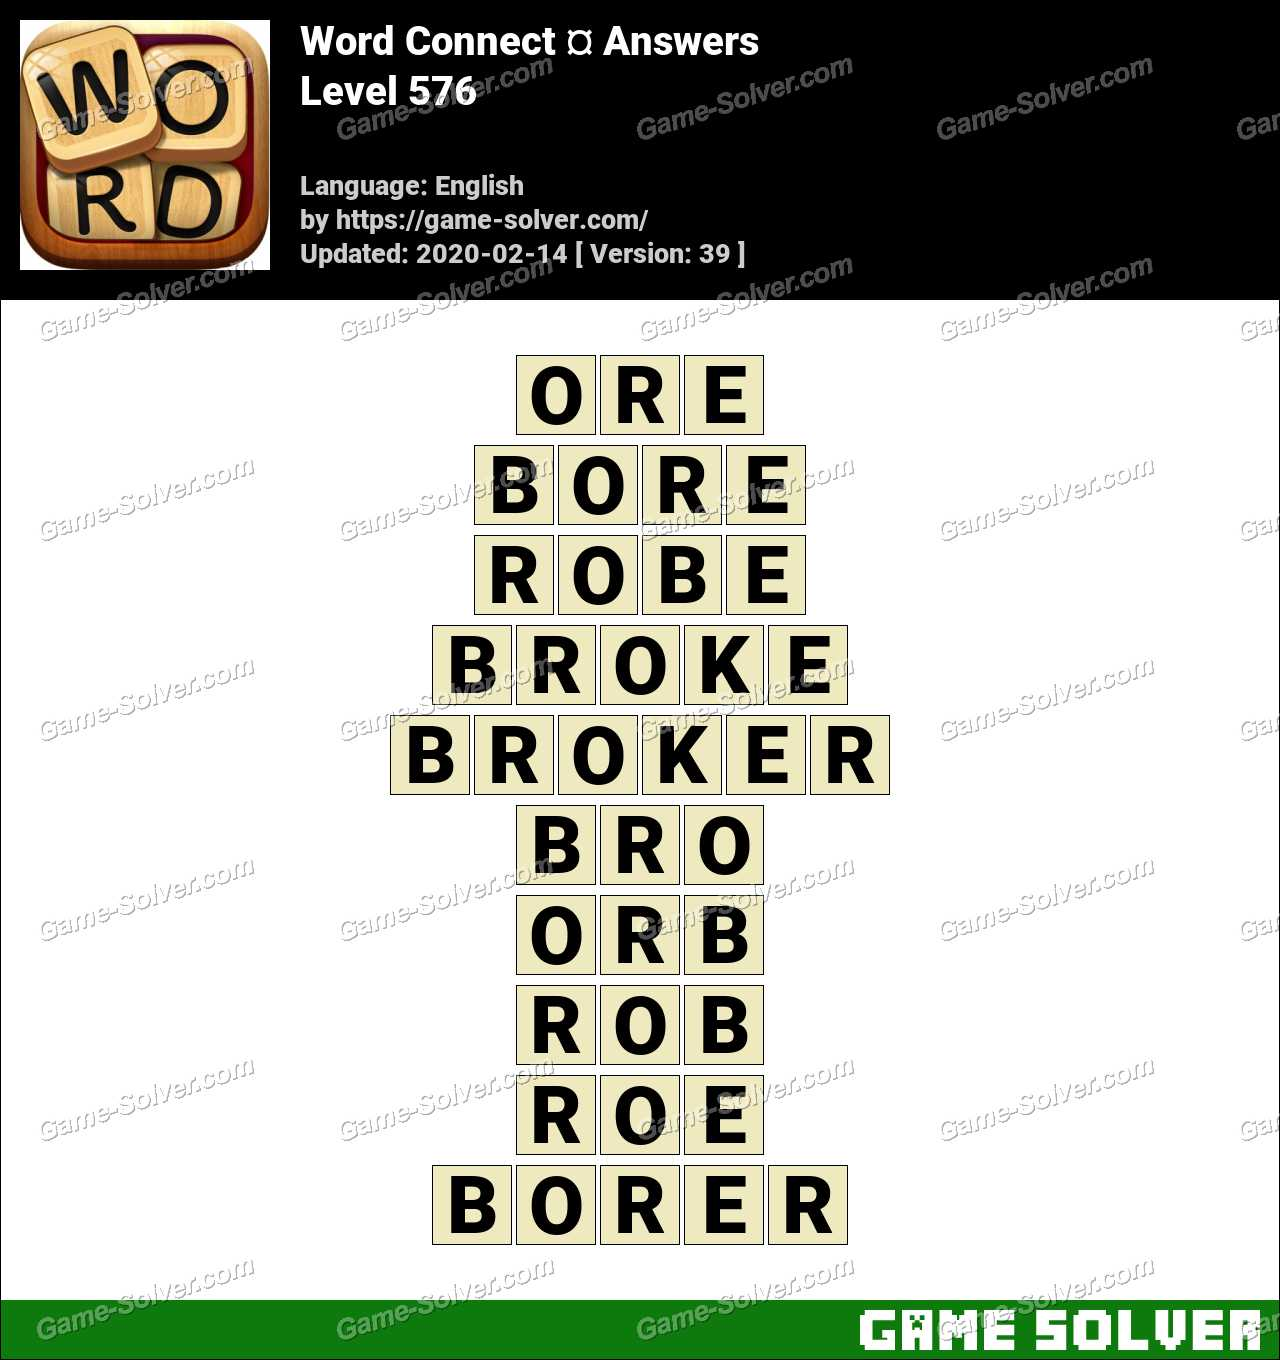 Word Connect Level 576 Answers